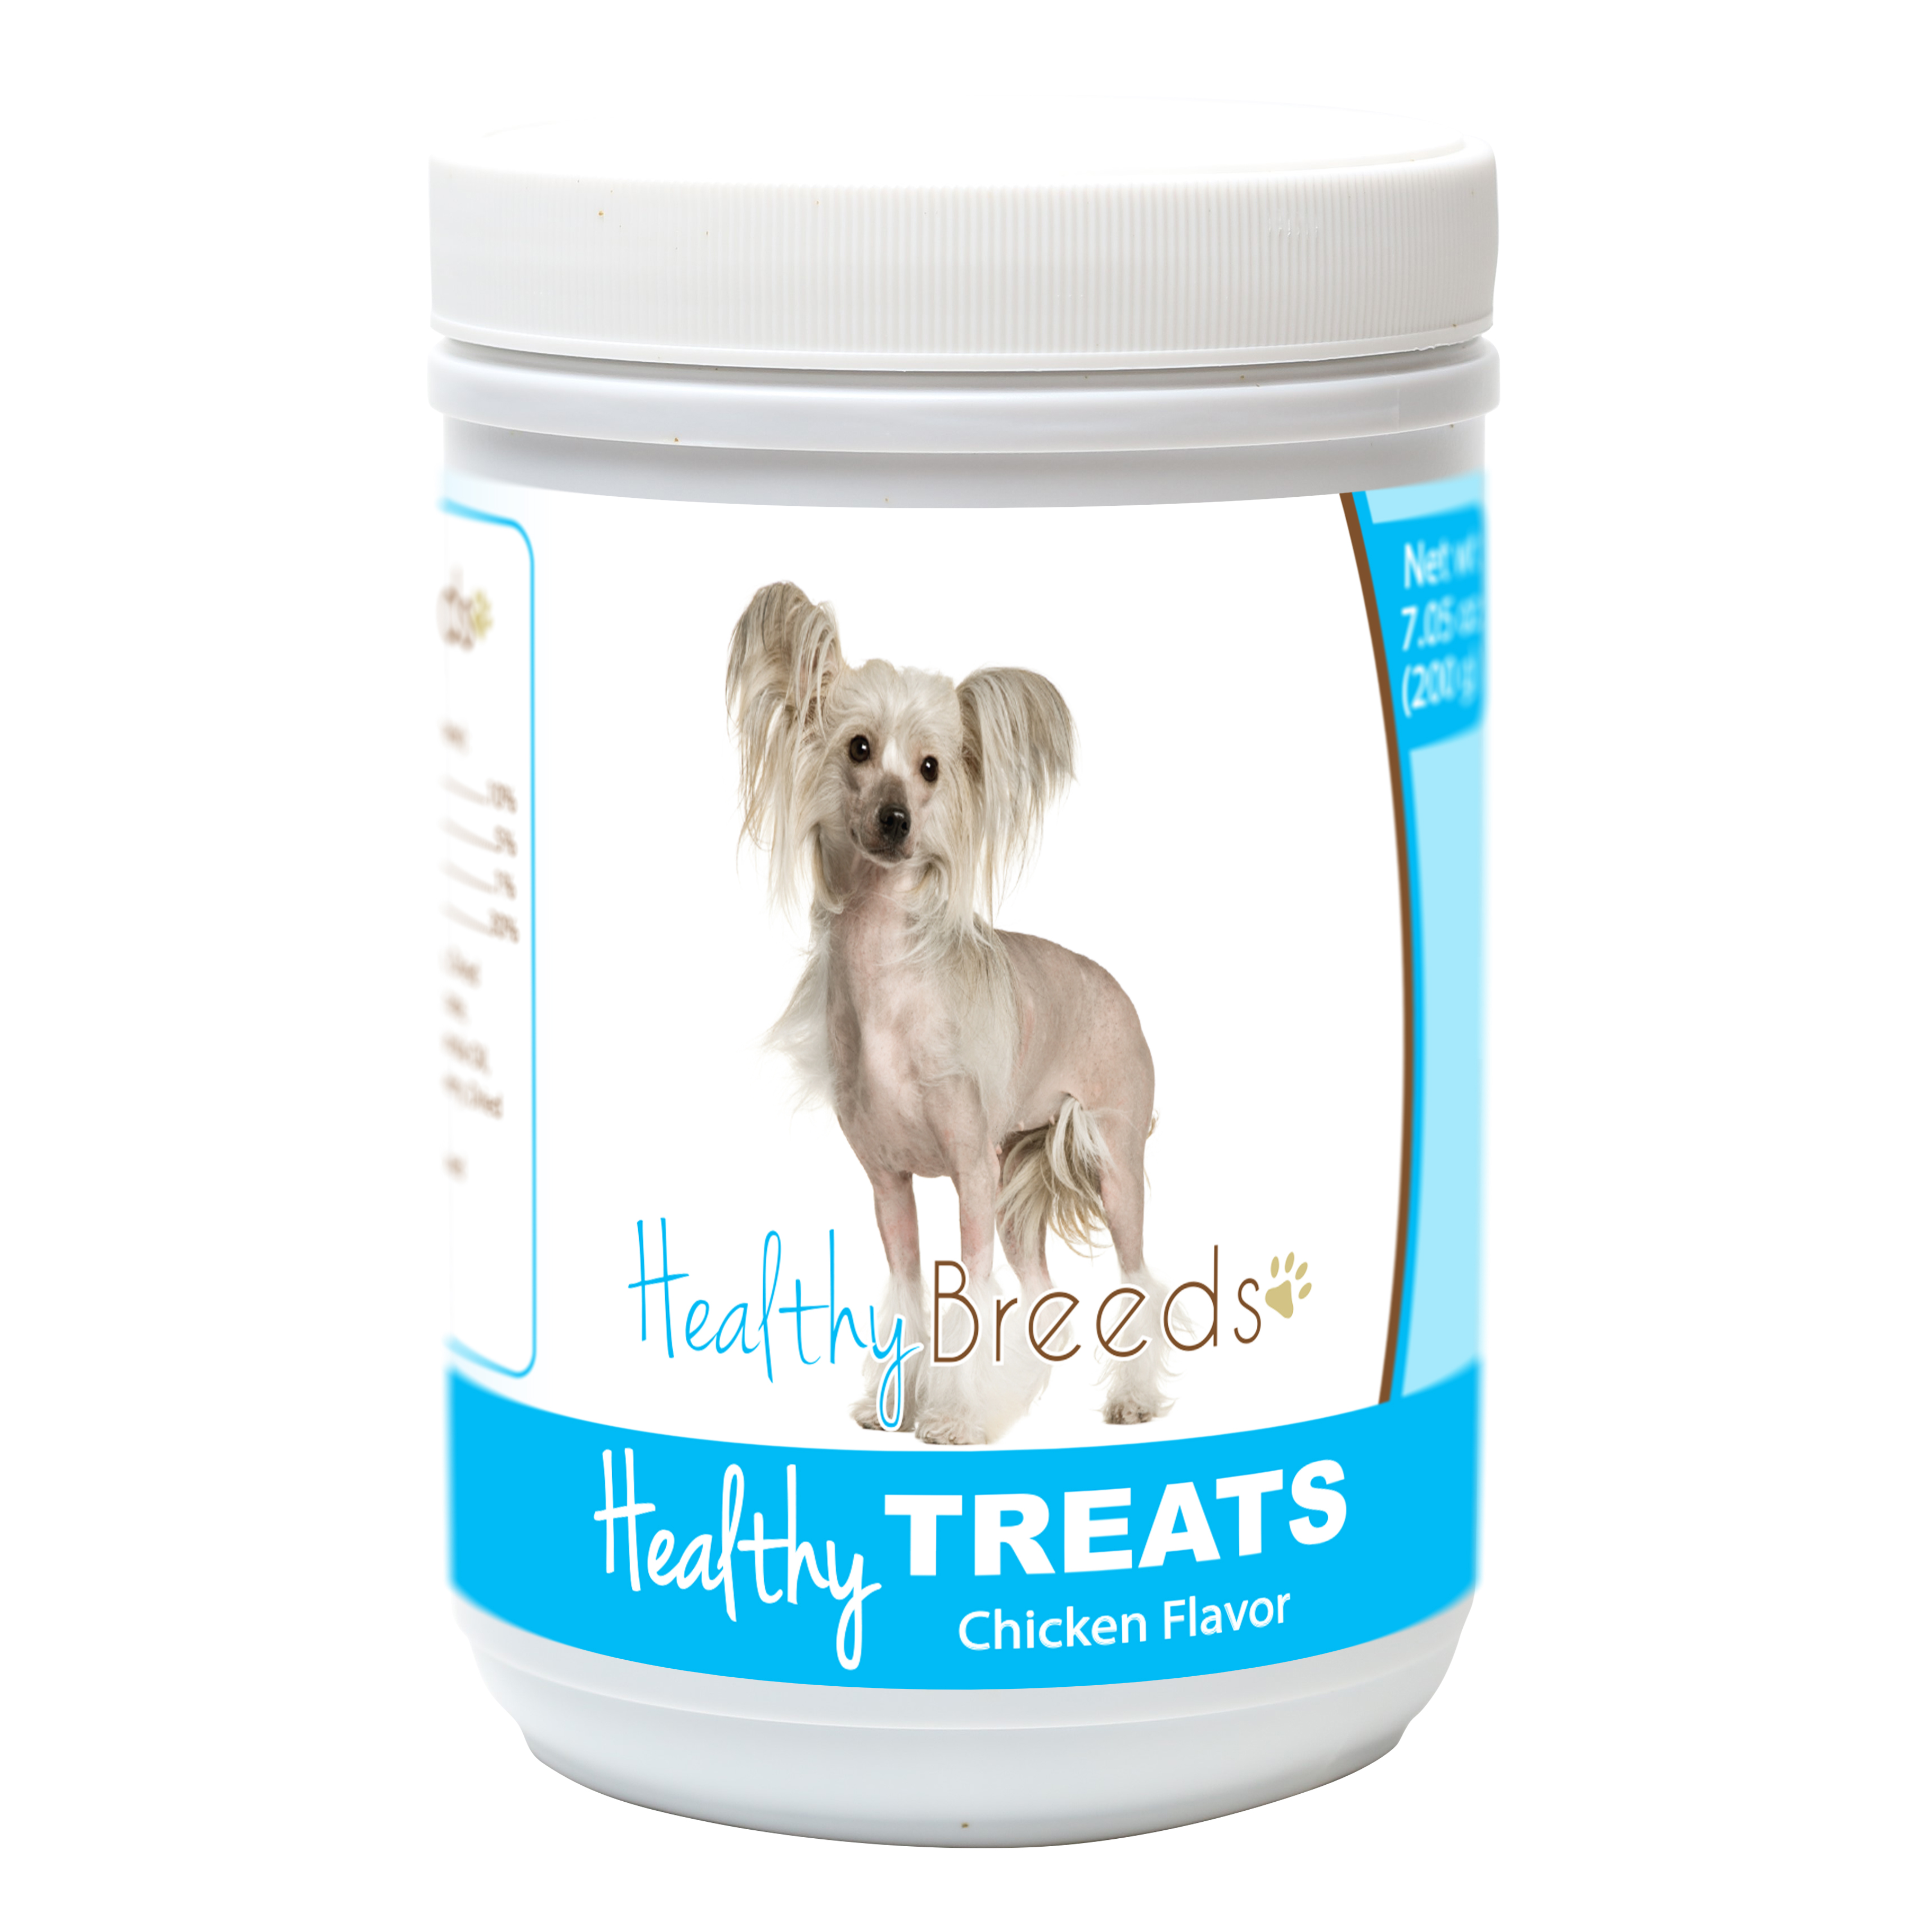 Healthy Breeds Chinese Crested Healthy Soft Chewy Dog Treats